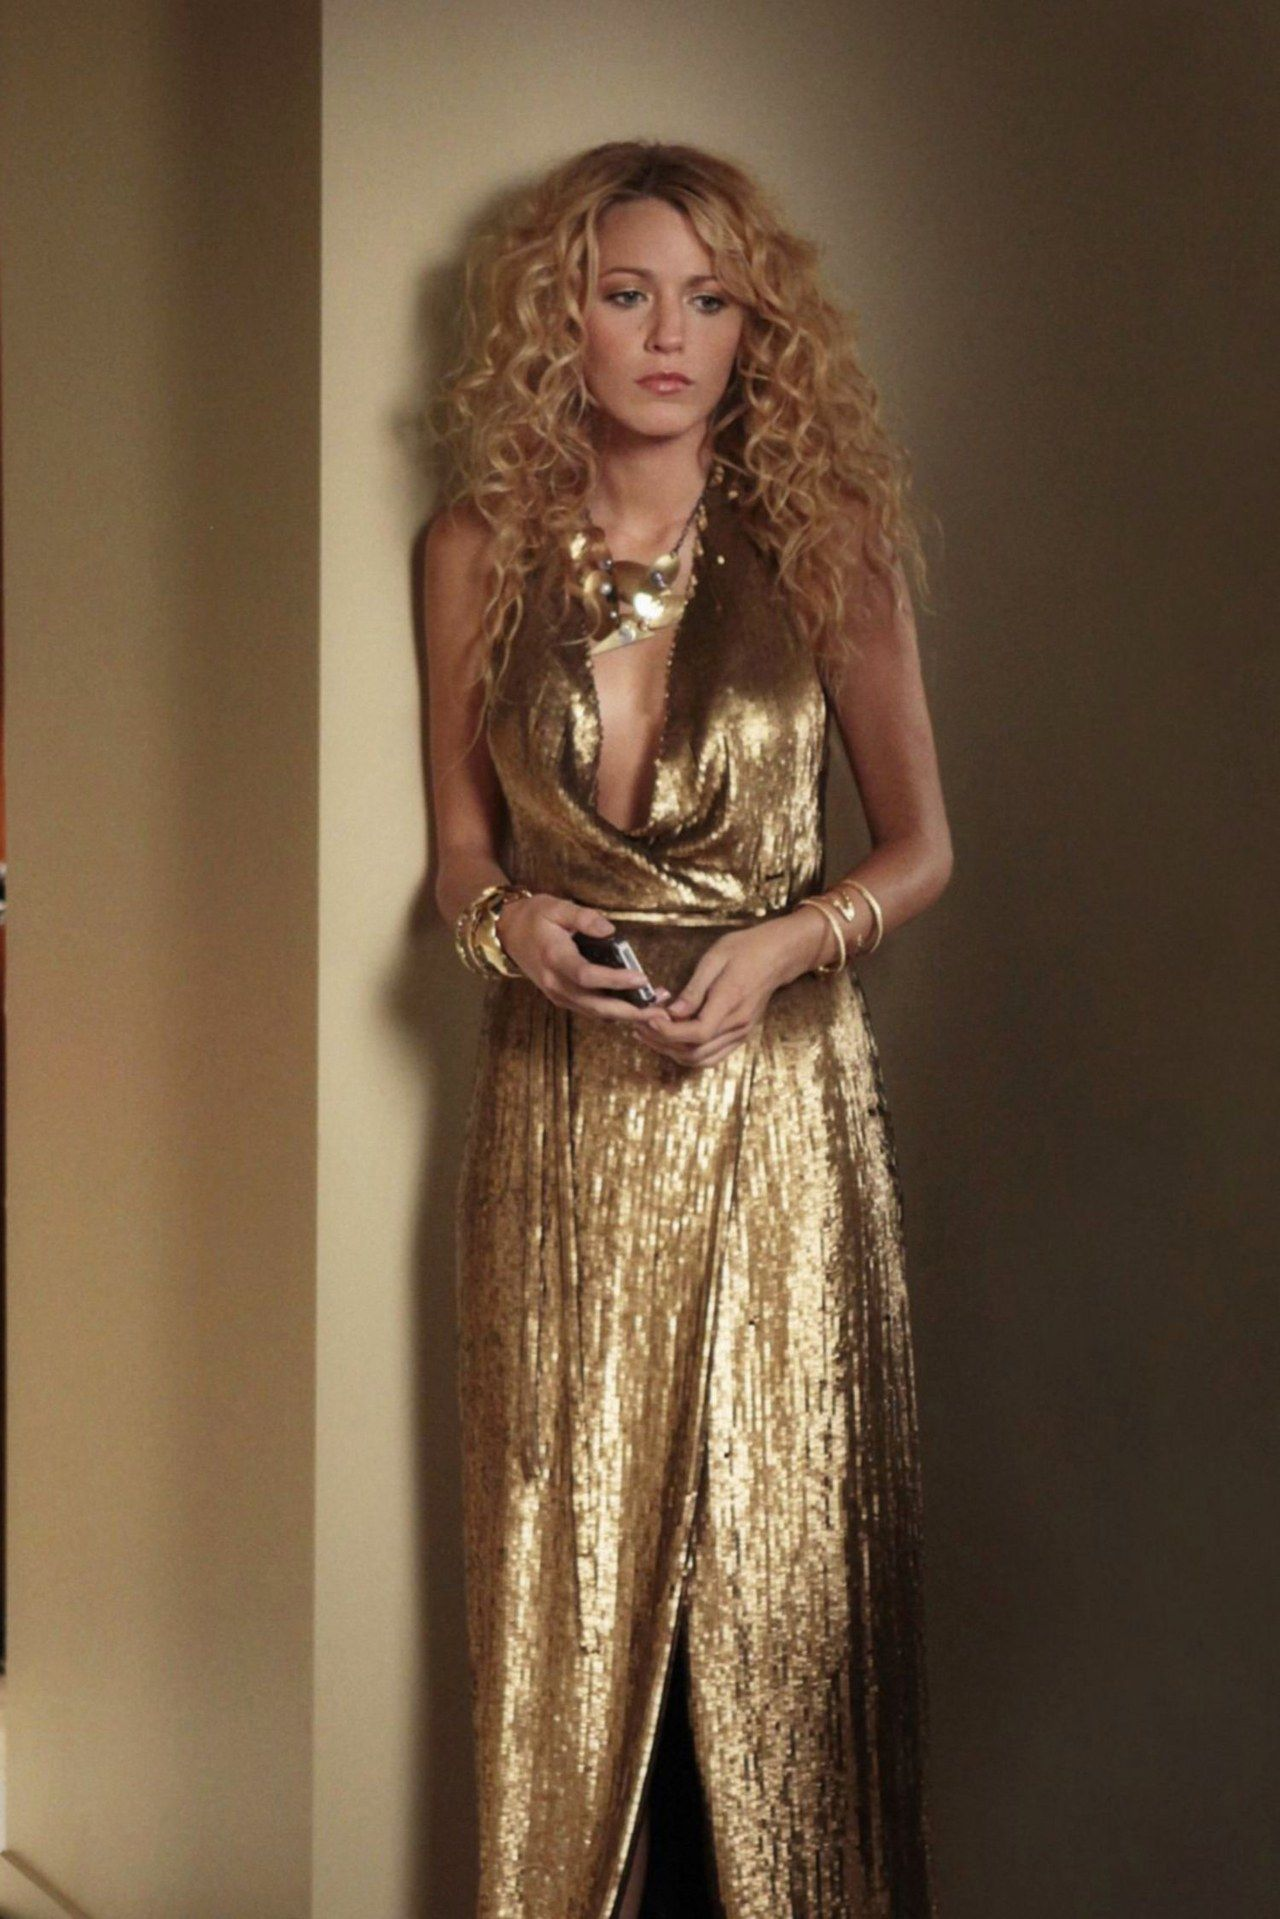 22+ Blake lively gold dress ideas in 2021